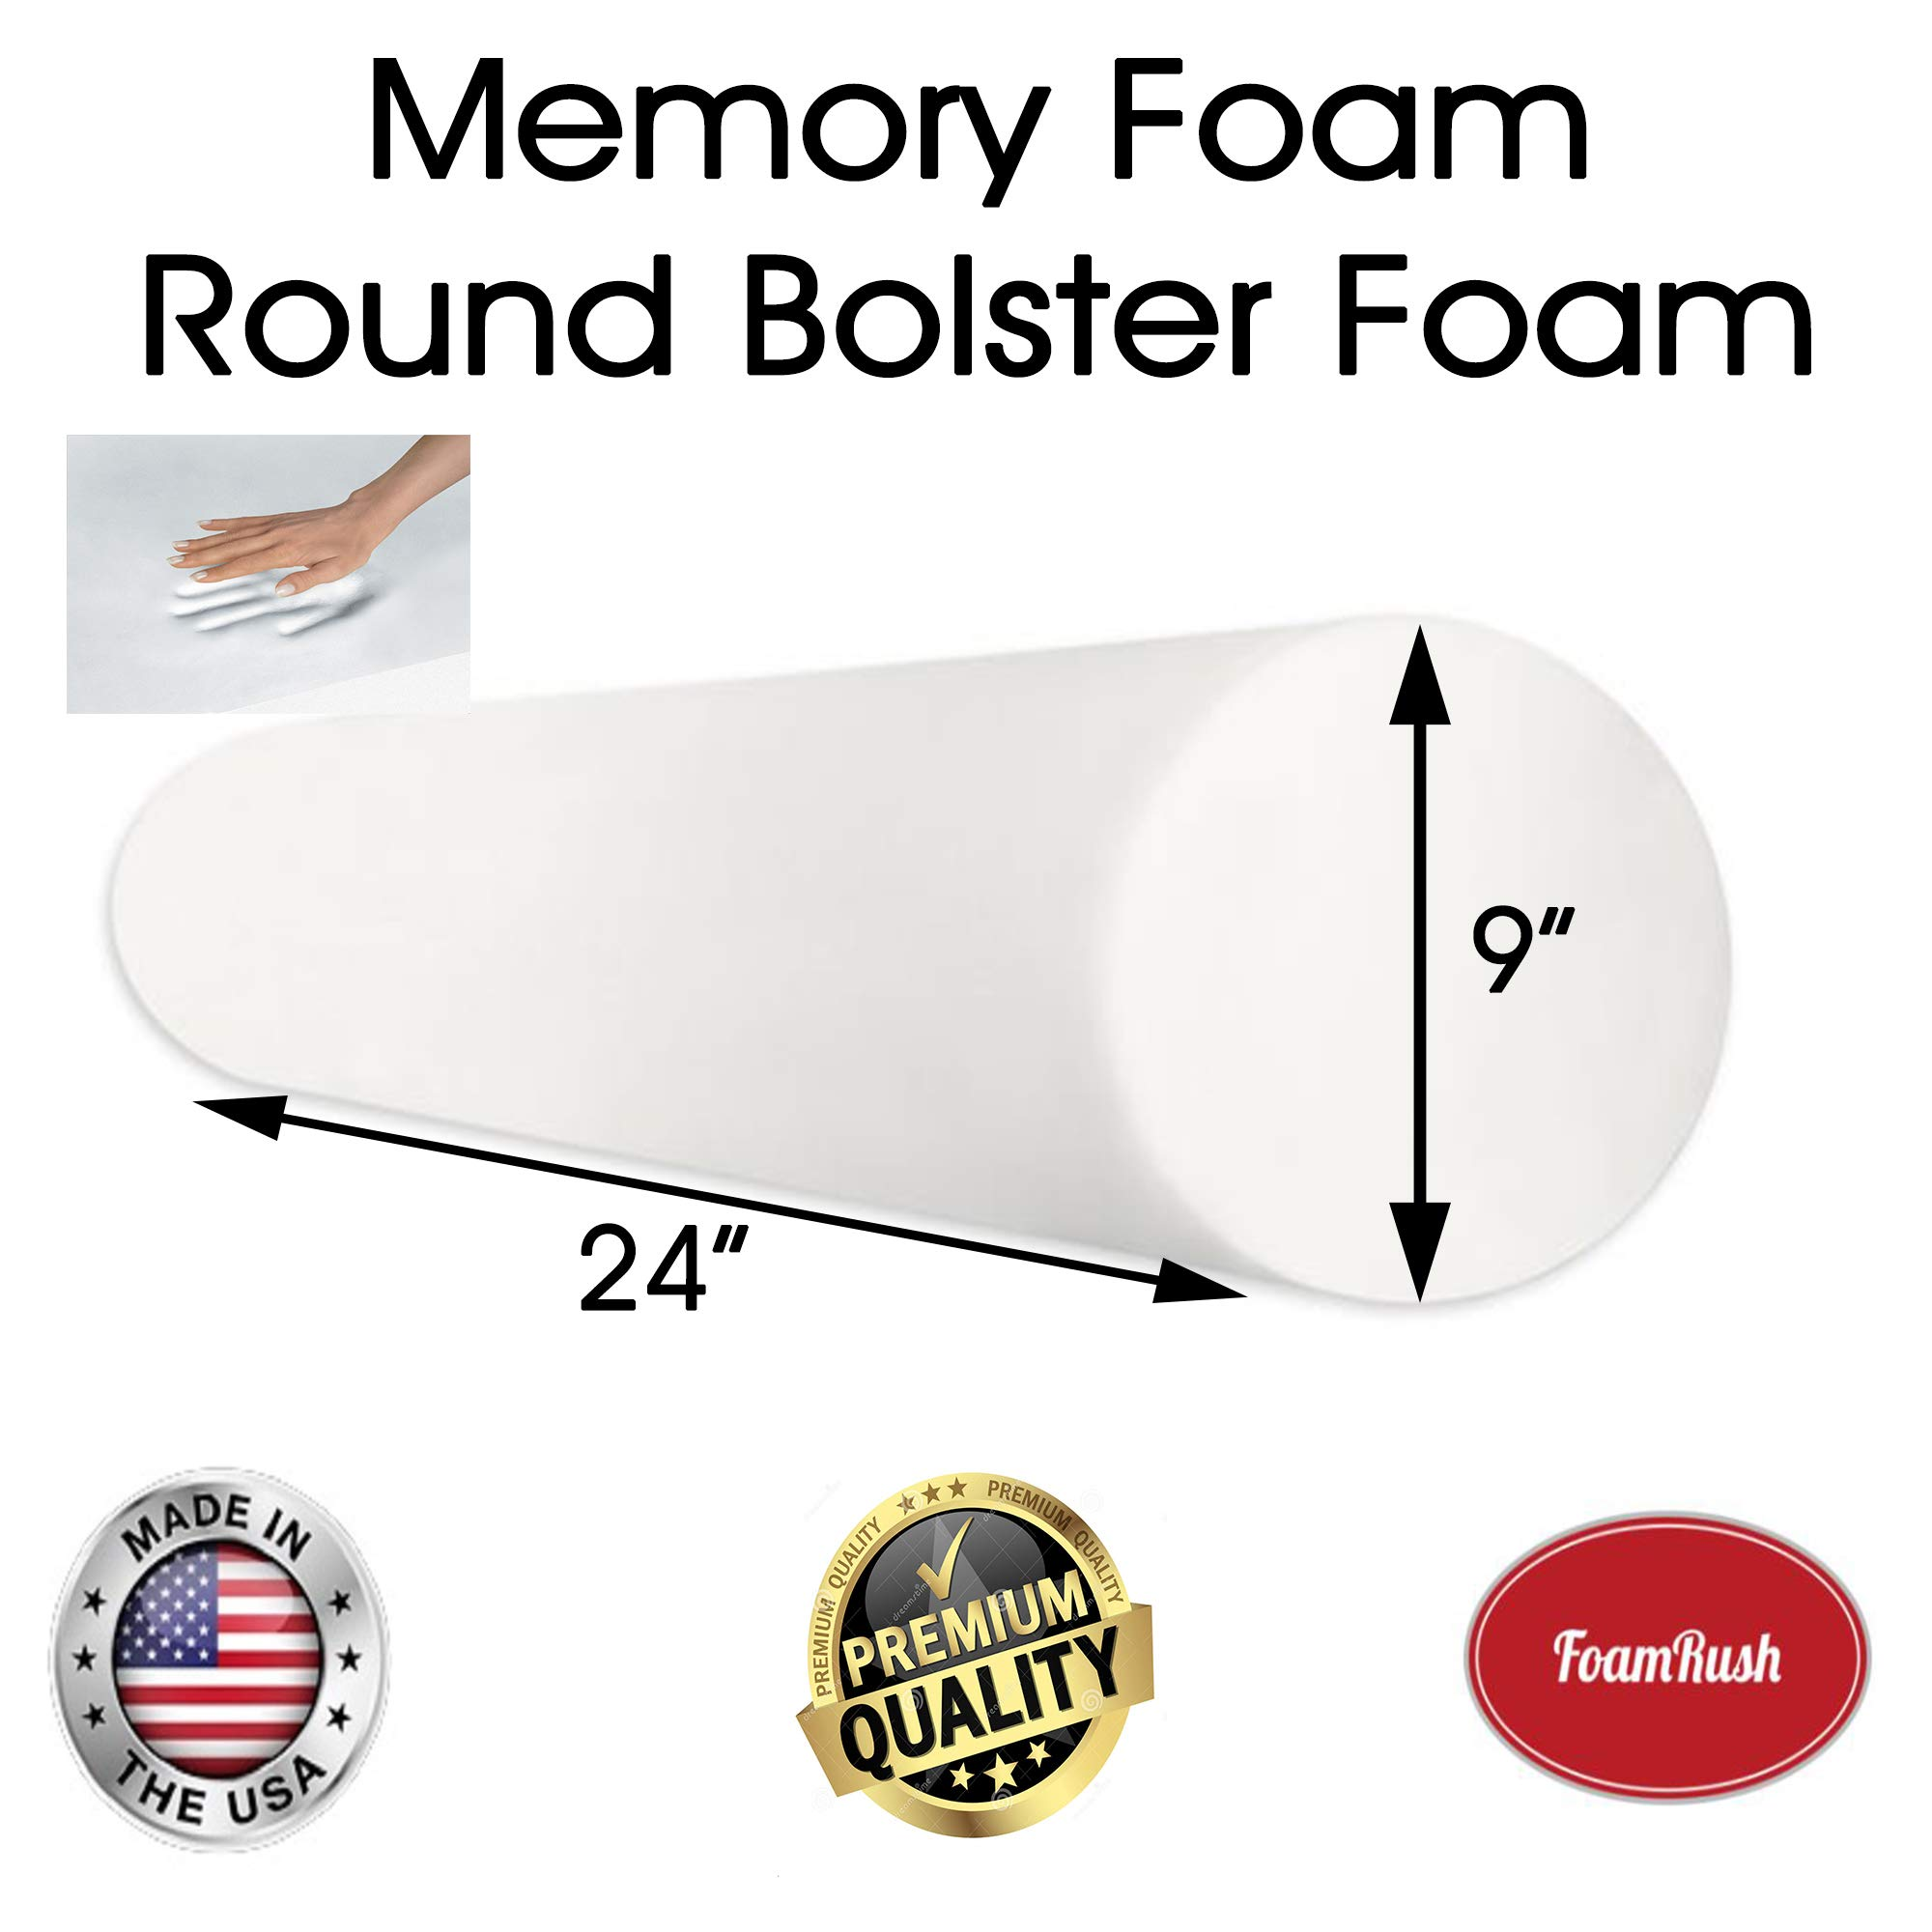 FoamRush 9'' Diameter x 24'' Long Premium Quality Round Bolster Memory Foam Roll Insert Replacement (Ideal for Home Accent Décor Positioning and General Fitness) Made in USA